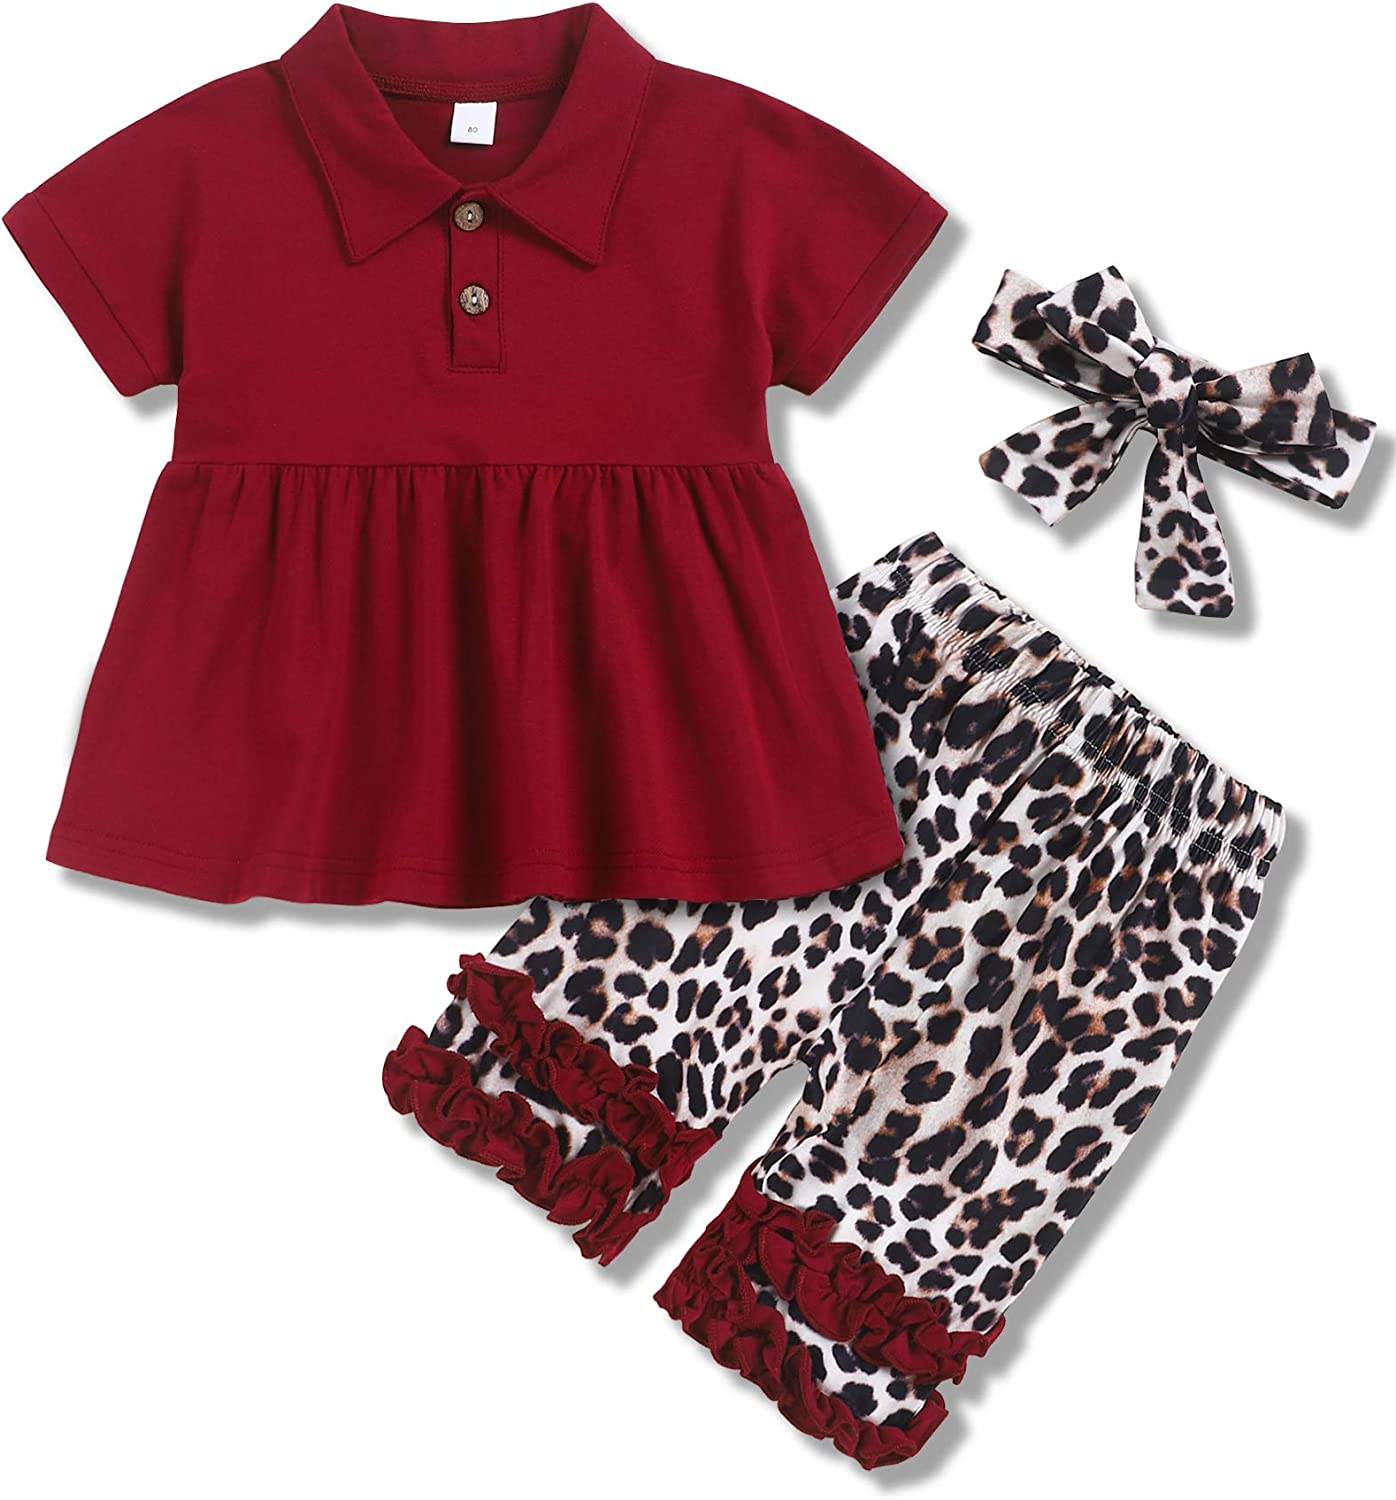 Toddler Baby Girl Summer Clothes Short Sleeve Shirt Floral Shorts with Headband Outfit Sets